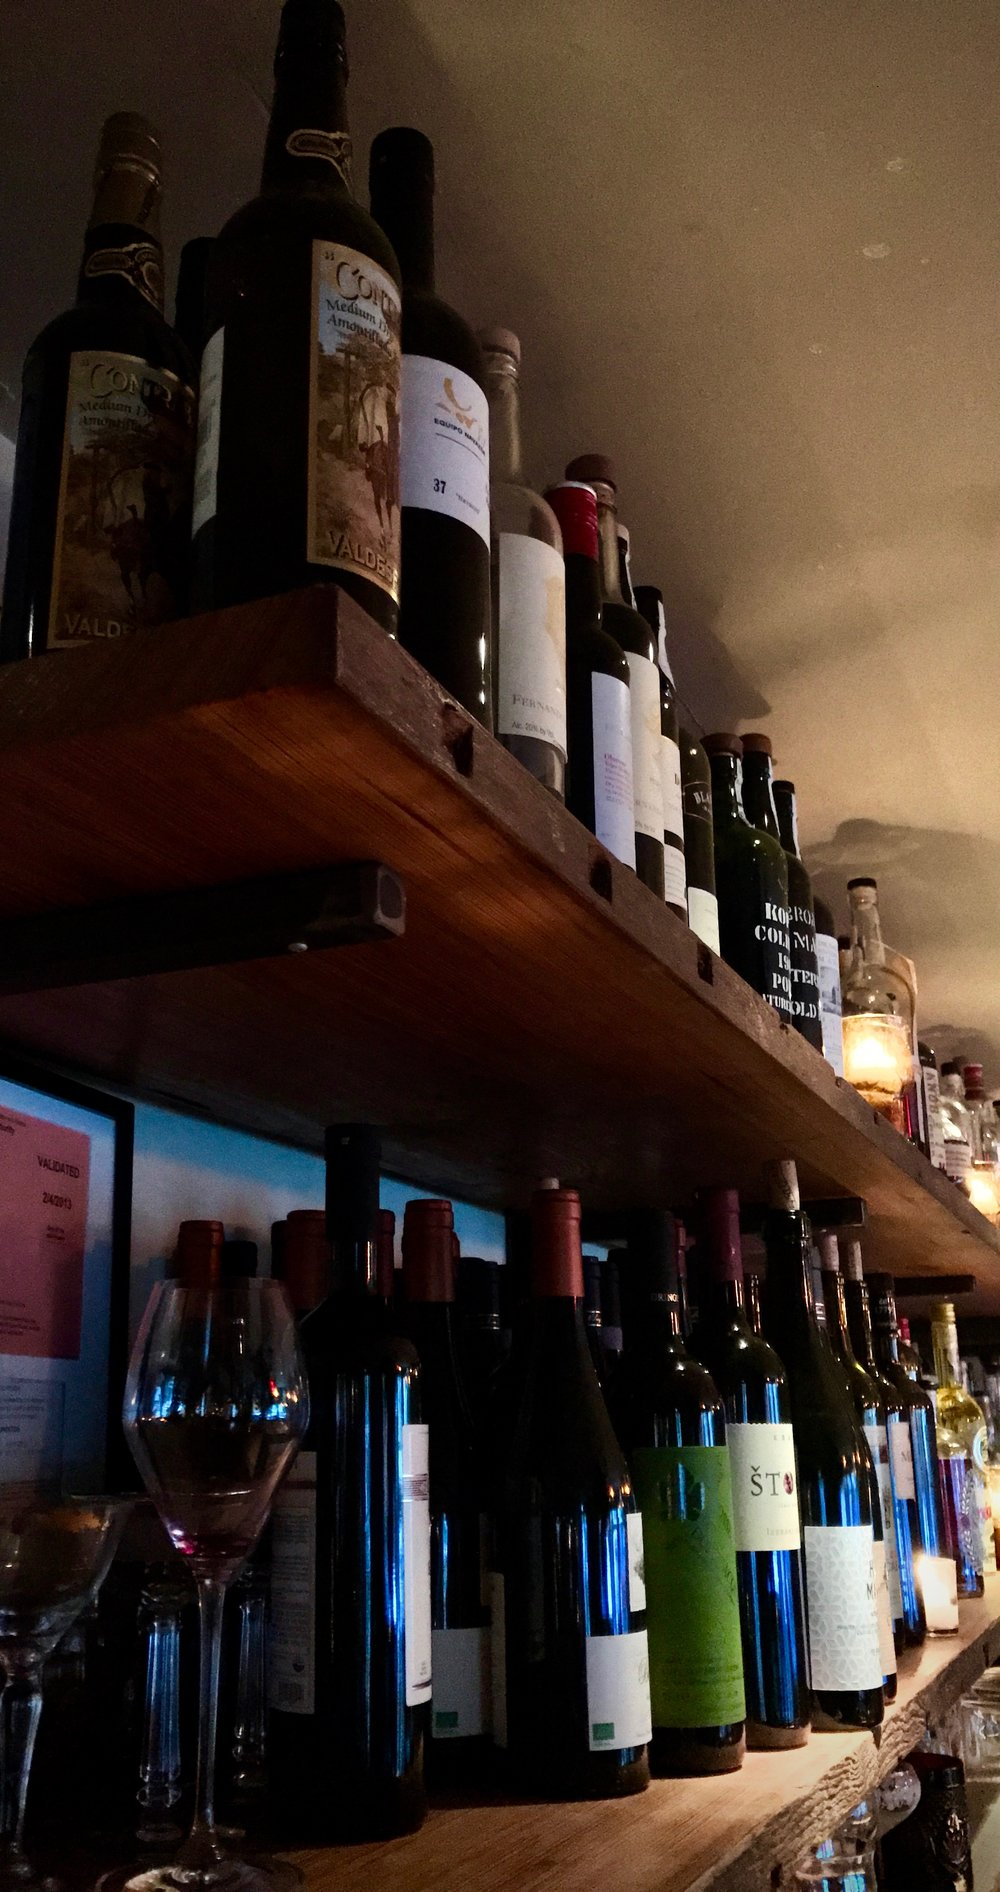 Some of the wine selection at Hearth in the East Village.